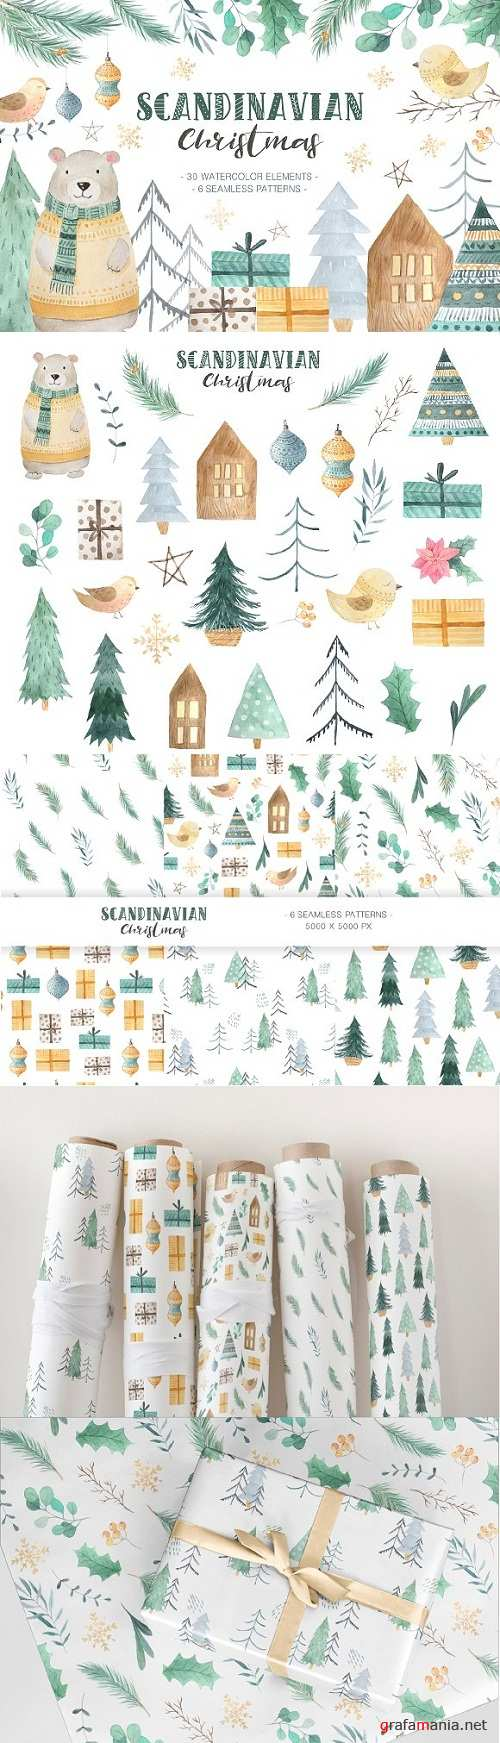 Scandinavian Watercolor Christmas 2031626